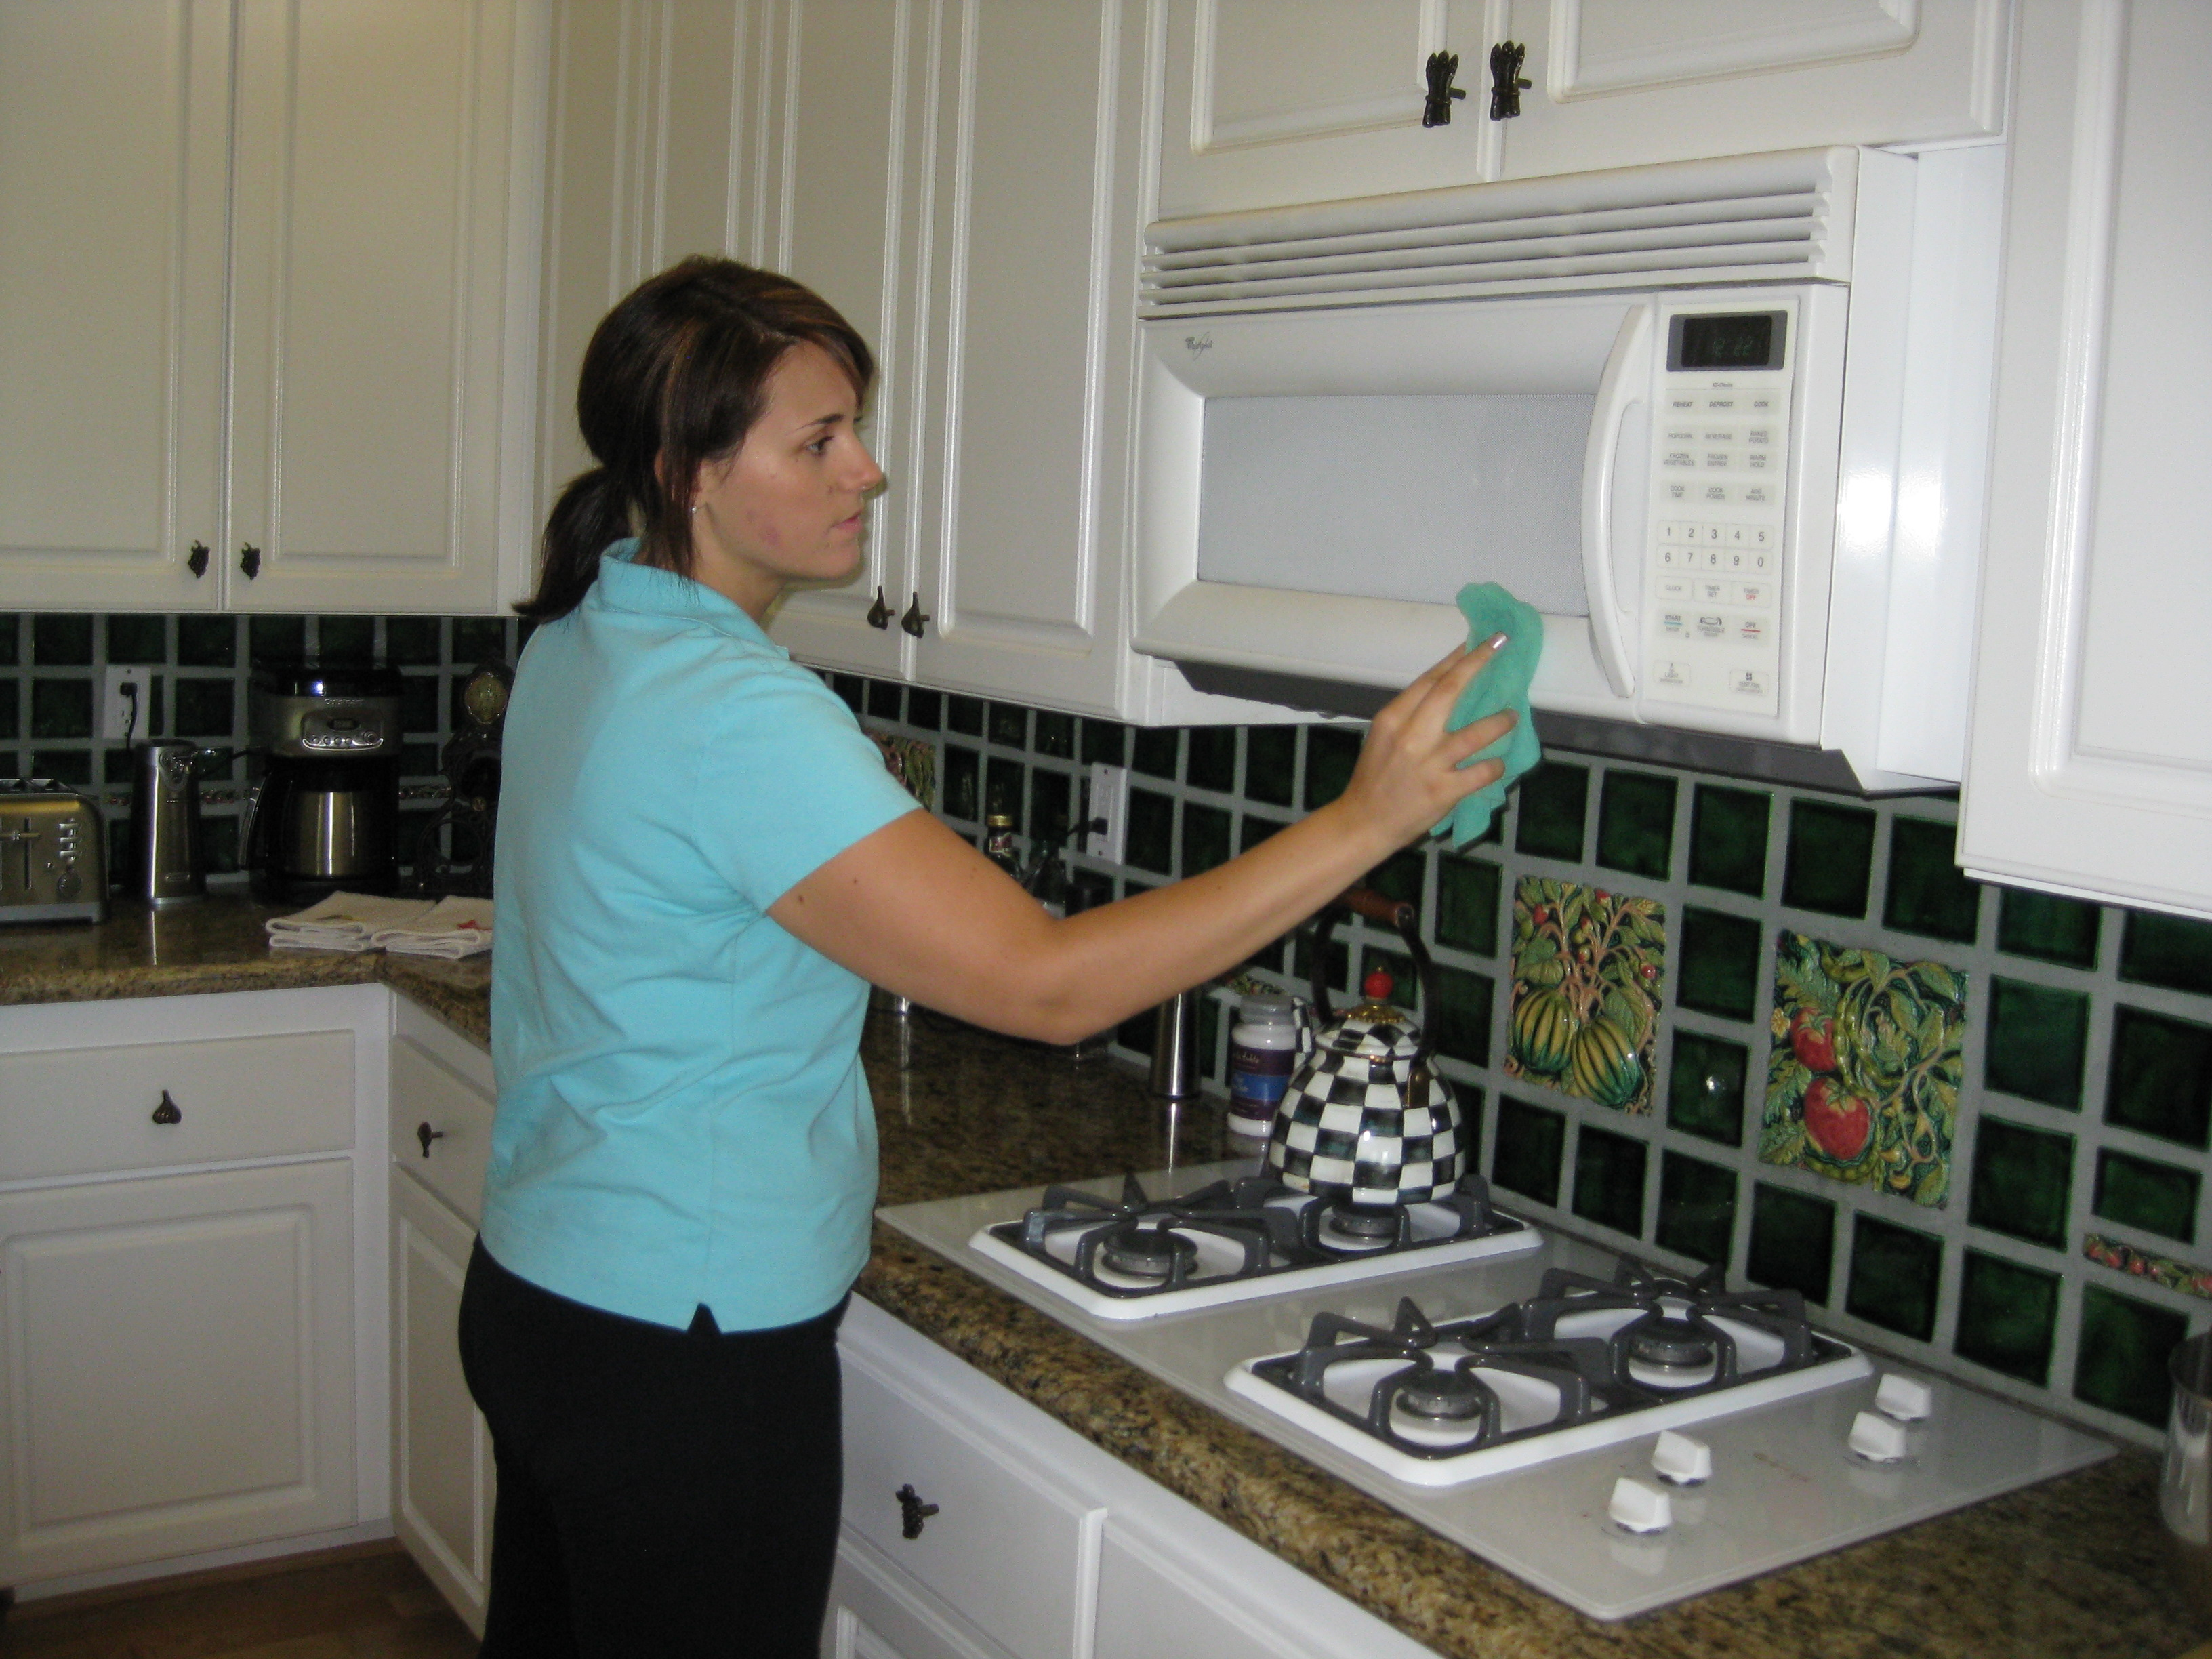 My Maids House Cleaning Service image 1